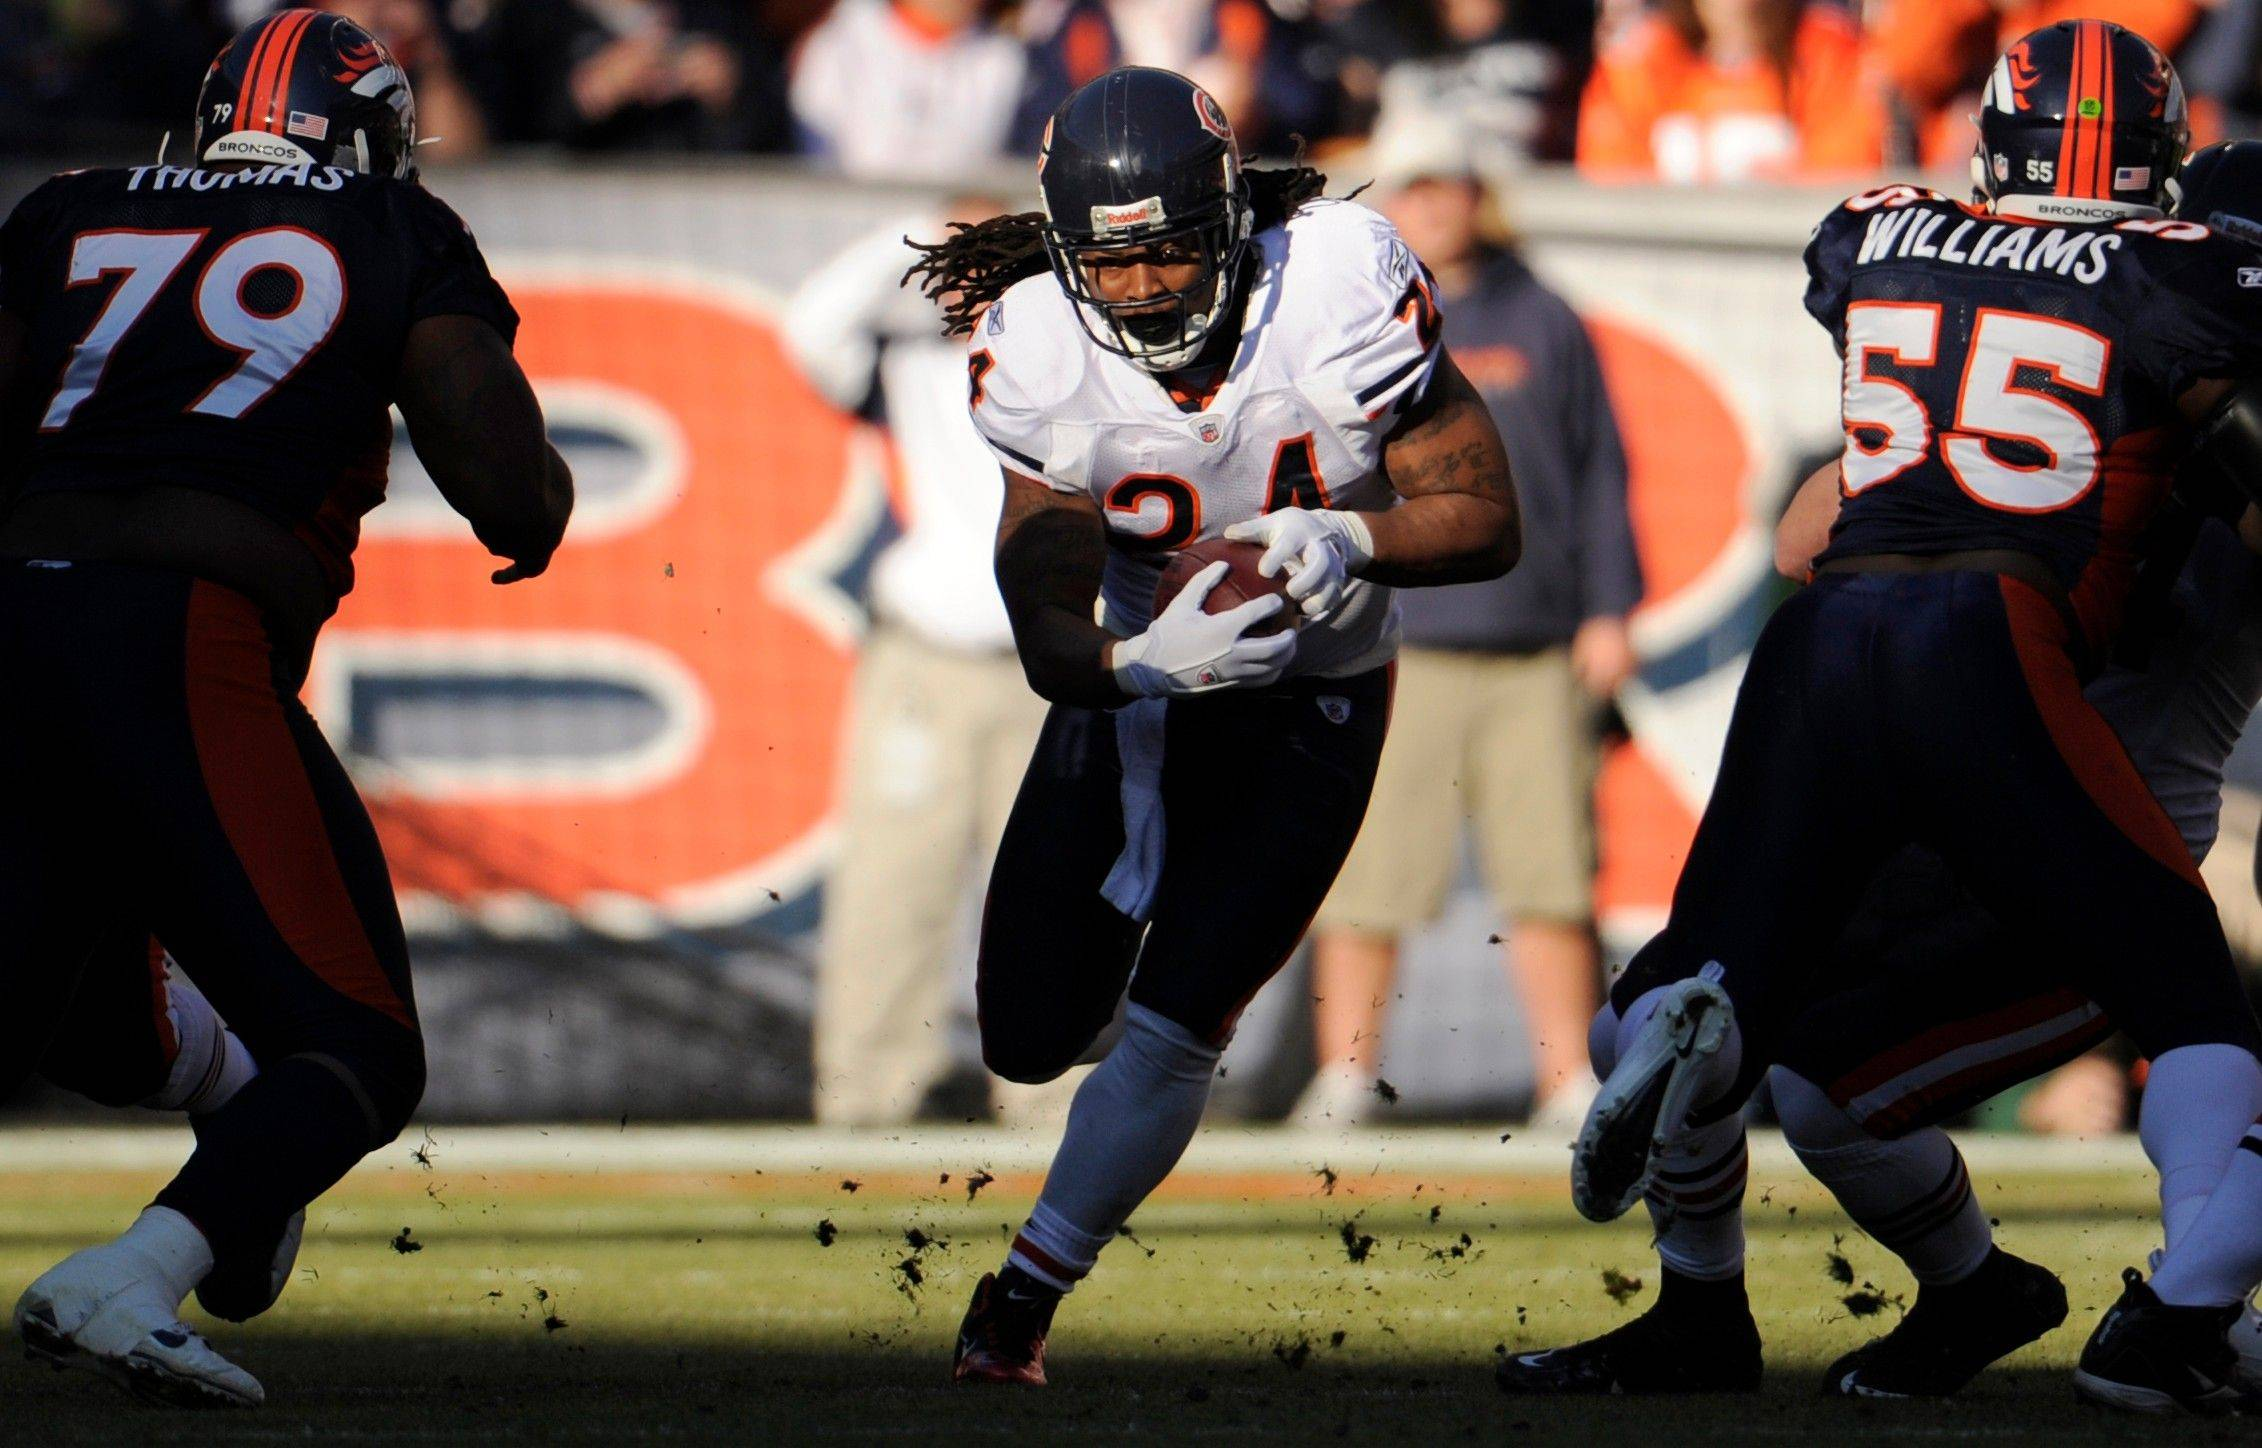 Chicago Bears running back Marion Barber rushes through a hole between Denver Broncos' Marcus Thomas (79) and D.J. Williams (55).